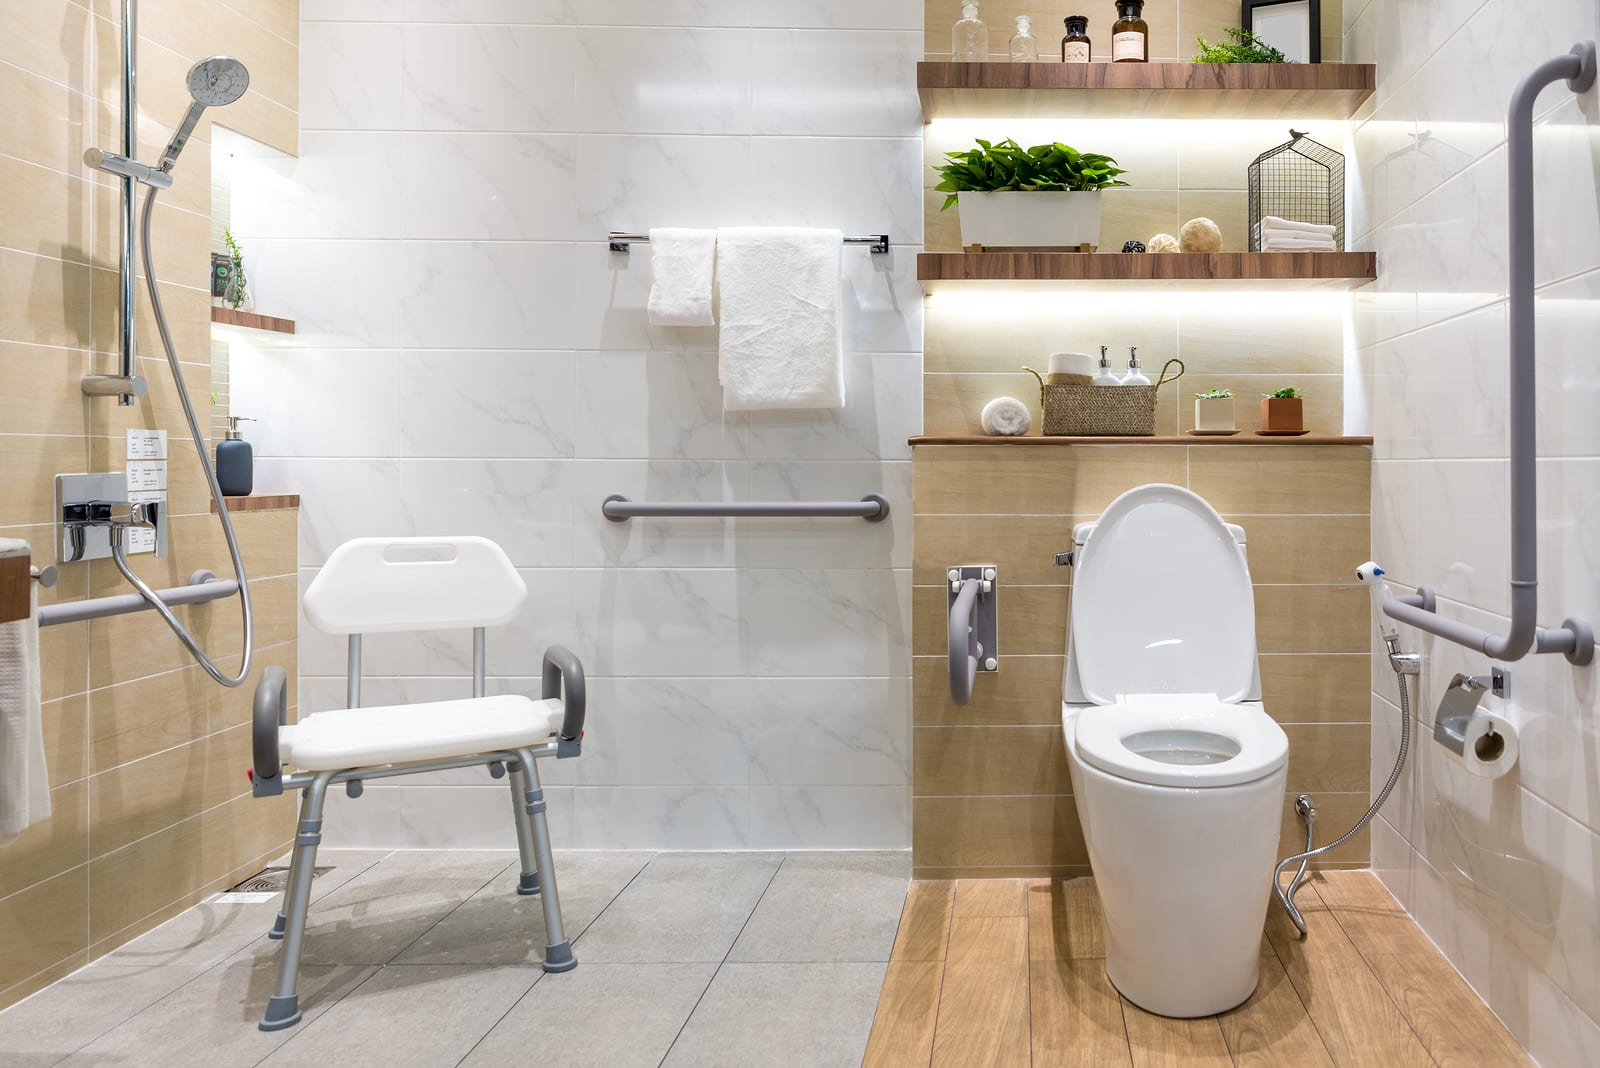 New Bathrooms for Boomers